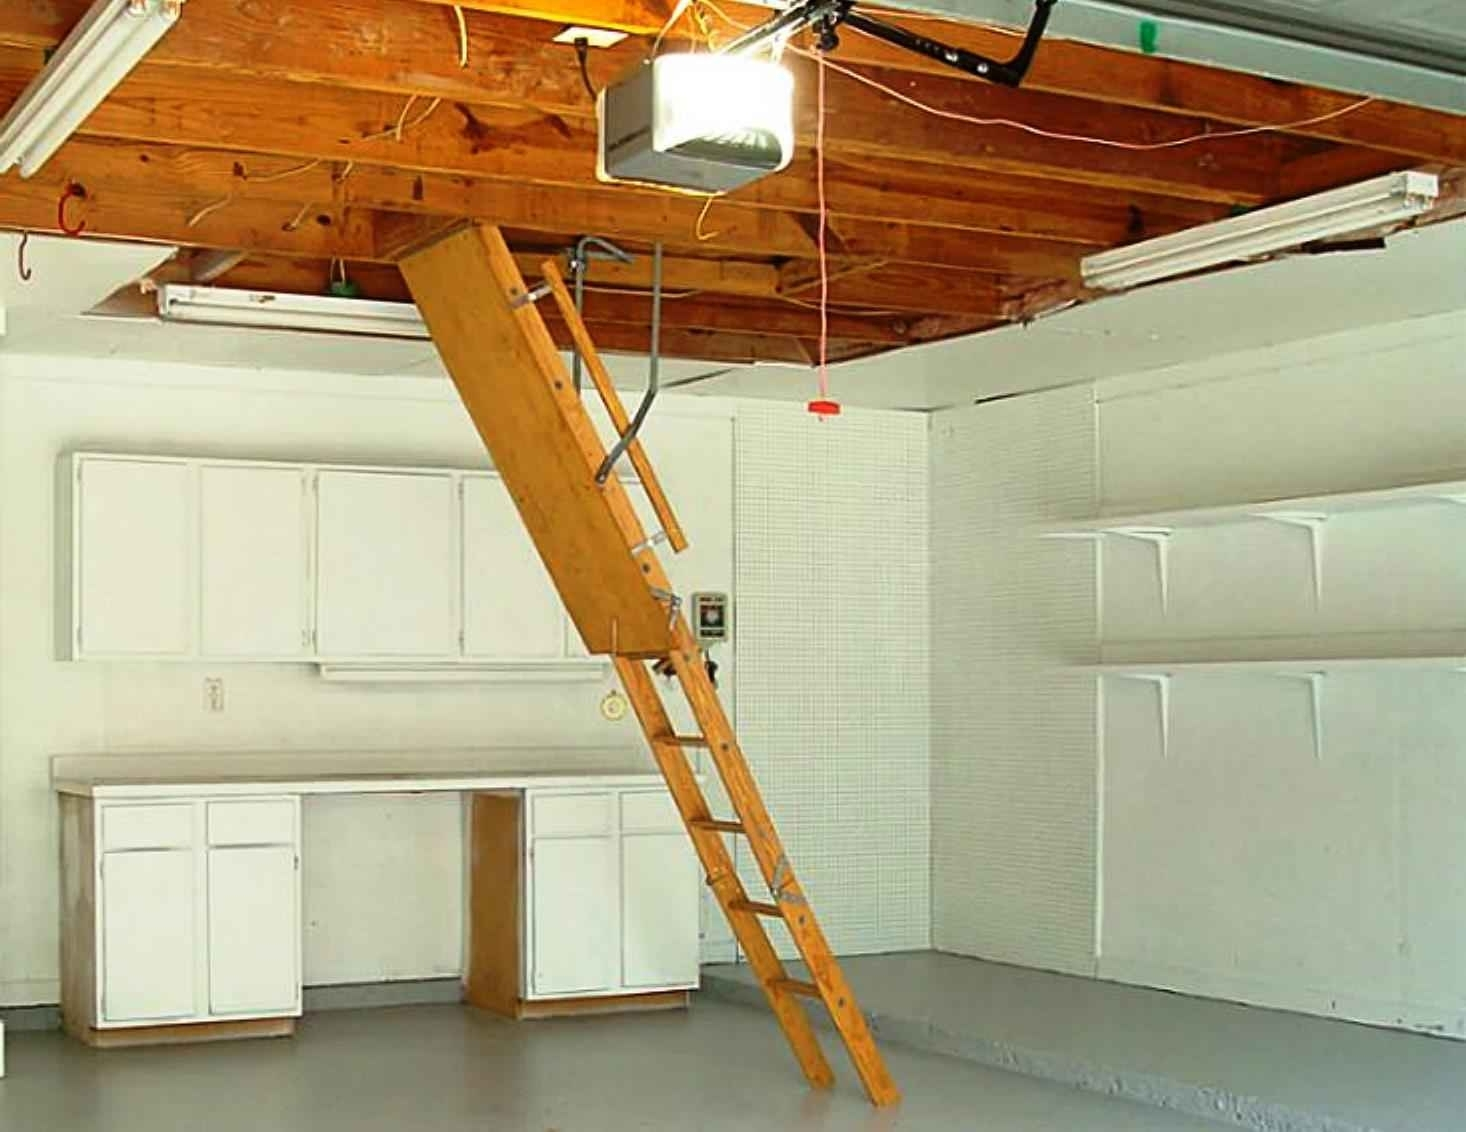 Attic stairs spring drums attic ideas for Attic pull down